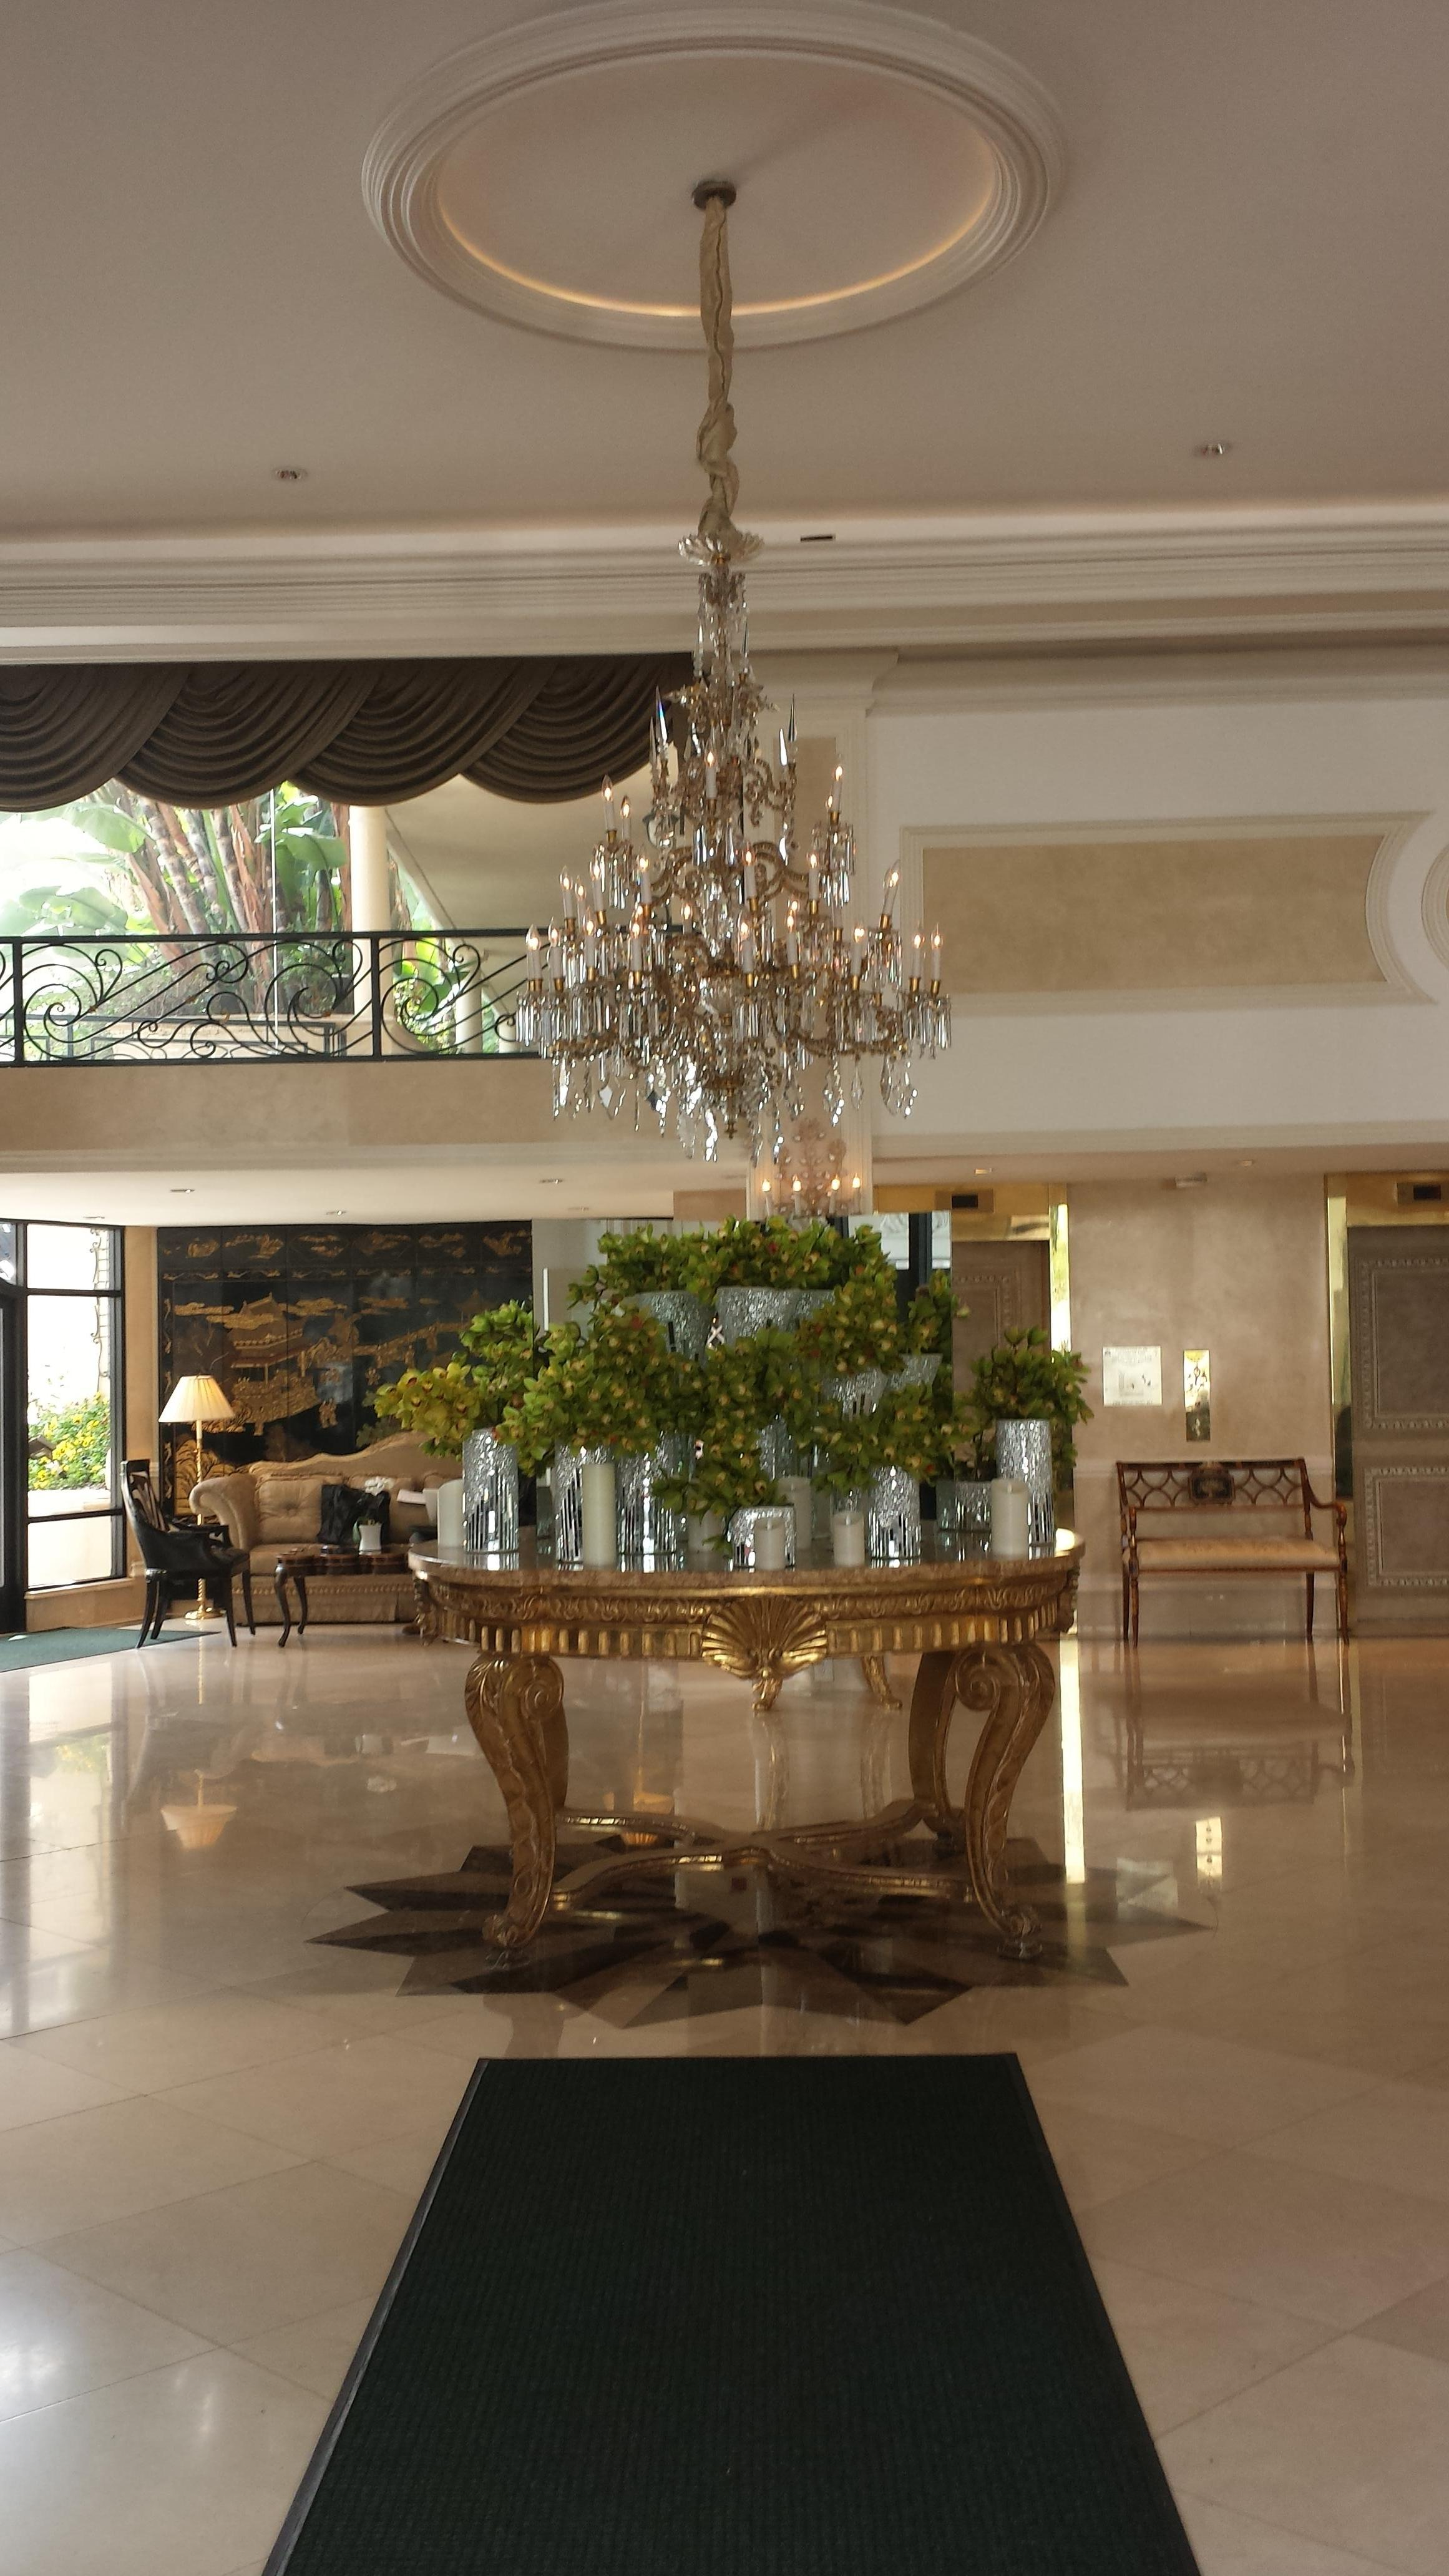 Beverly Hills Plaza Hotel & Spa In Los Angeles